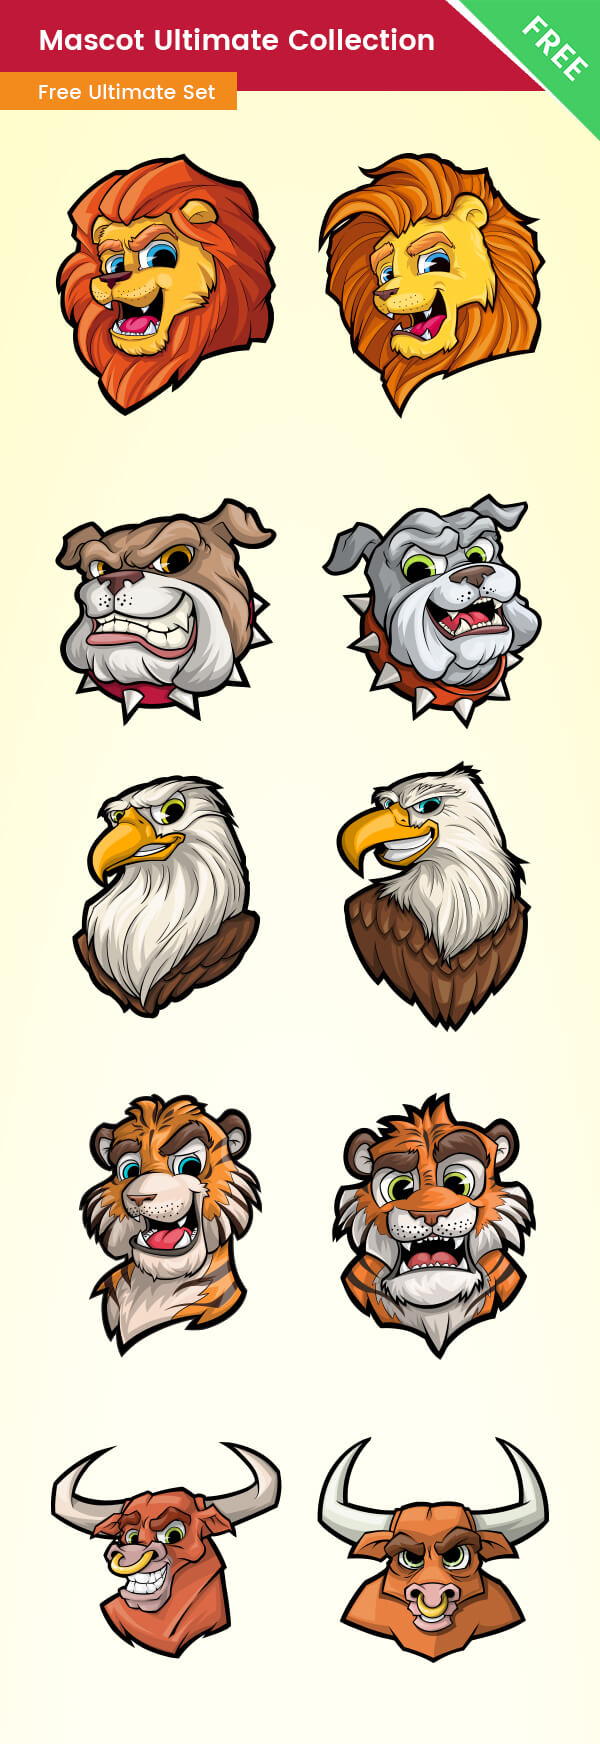 FREE Mascot Design Ultimate Collection - VectorCharacters